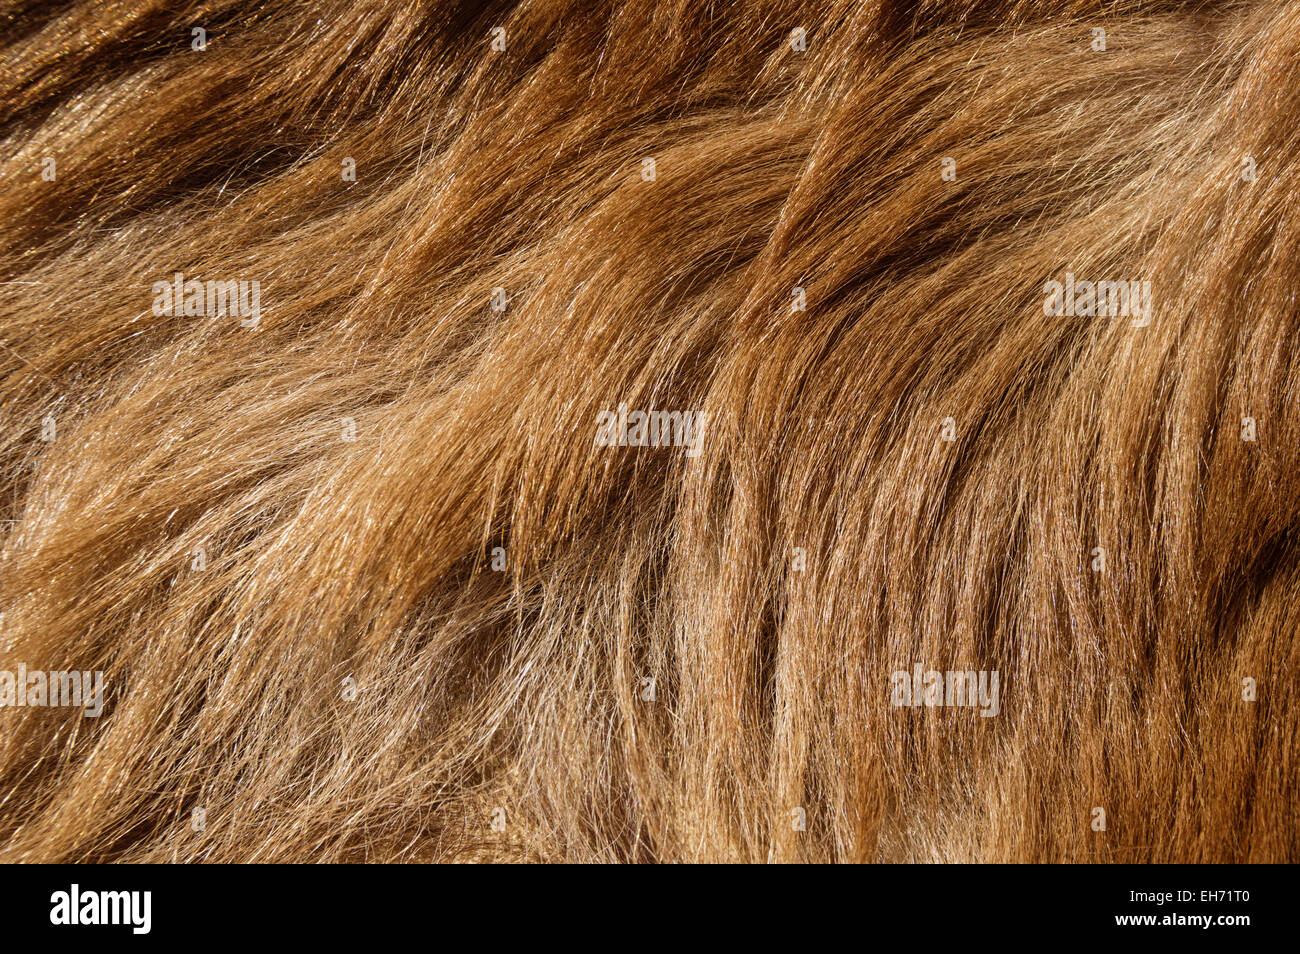 brown colored black bear fur background texture image Stock Photo